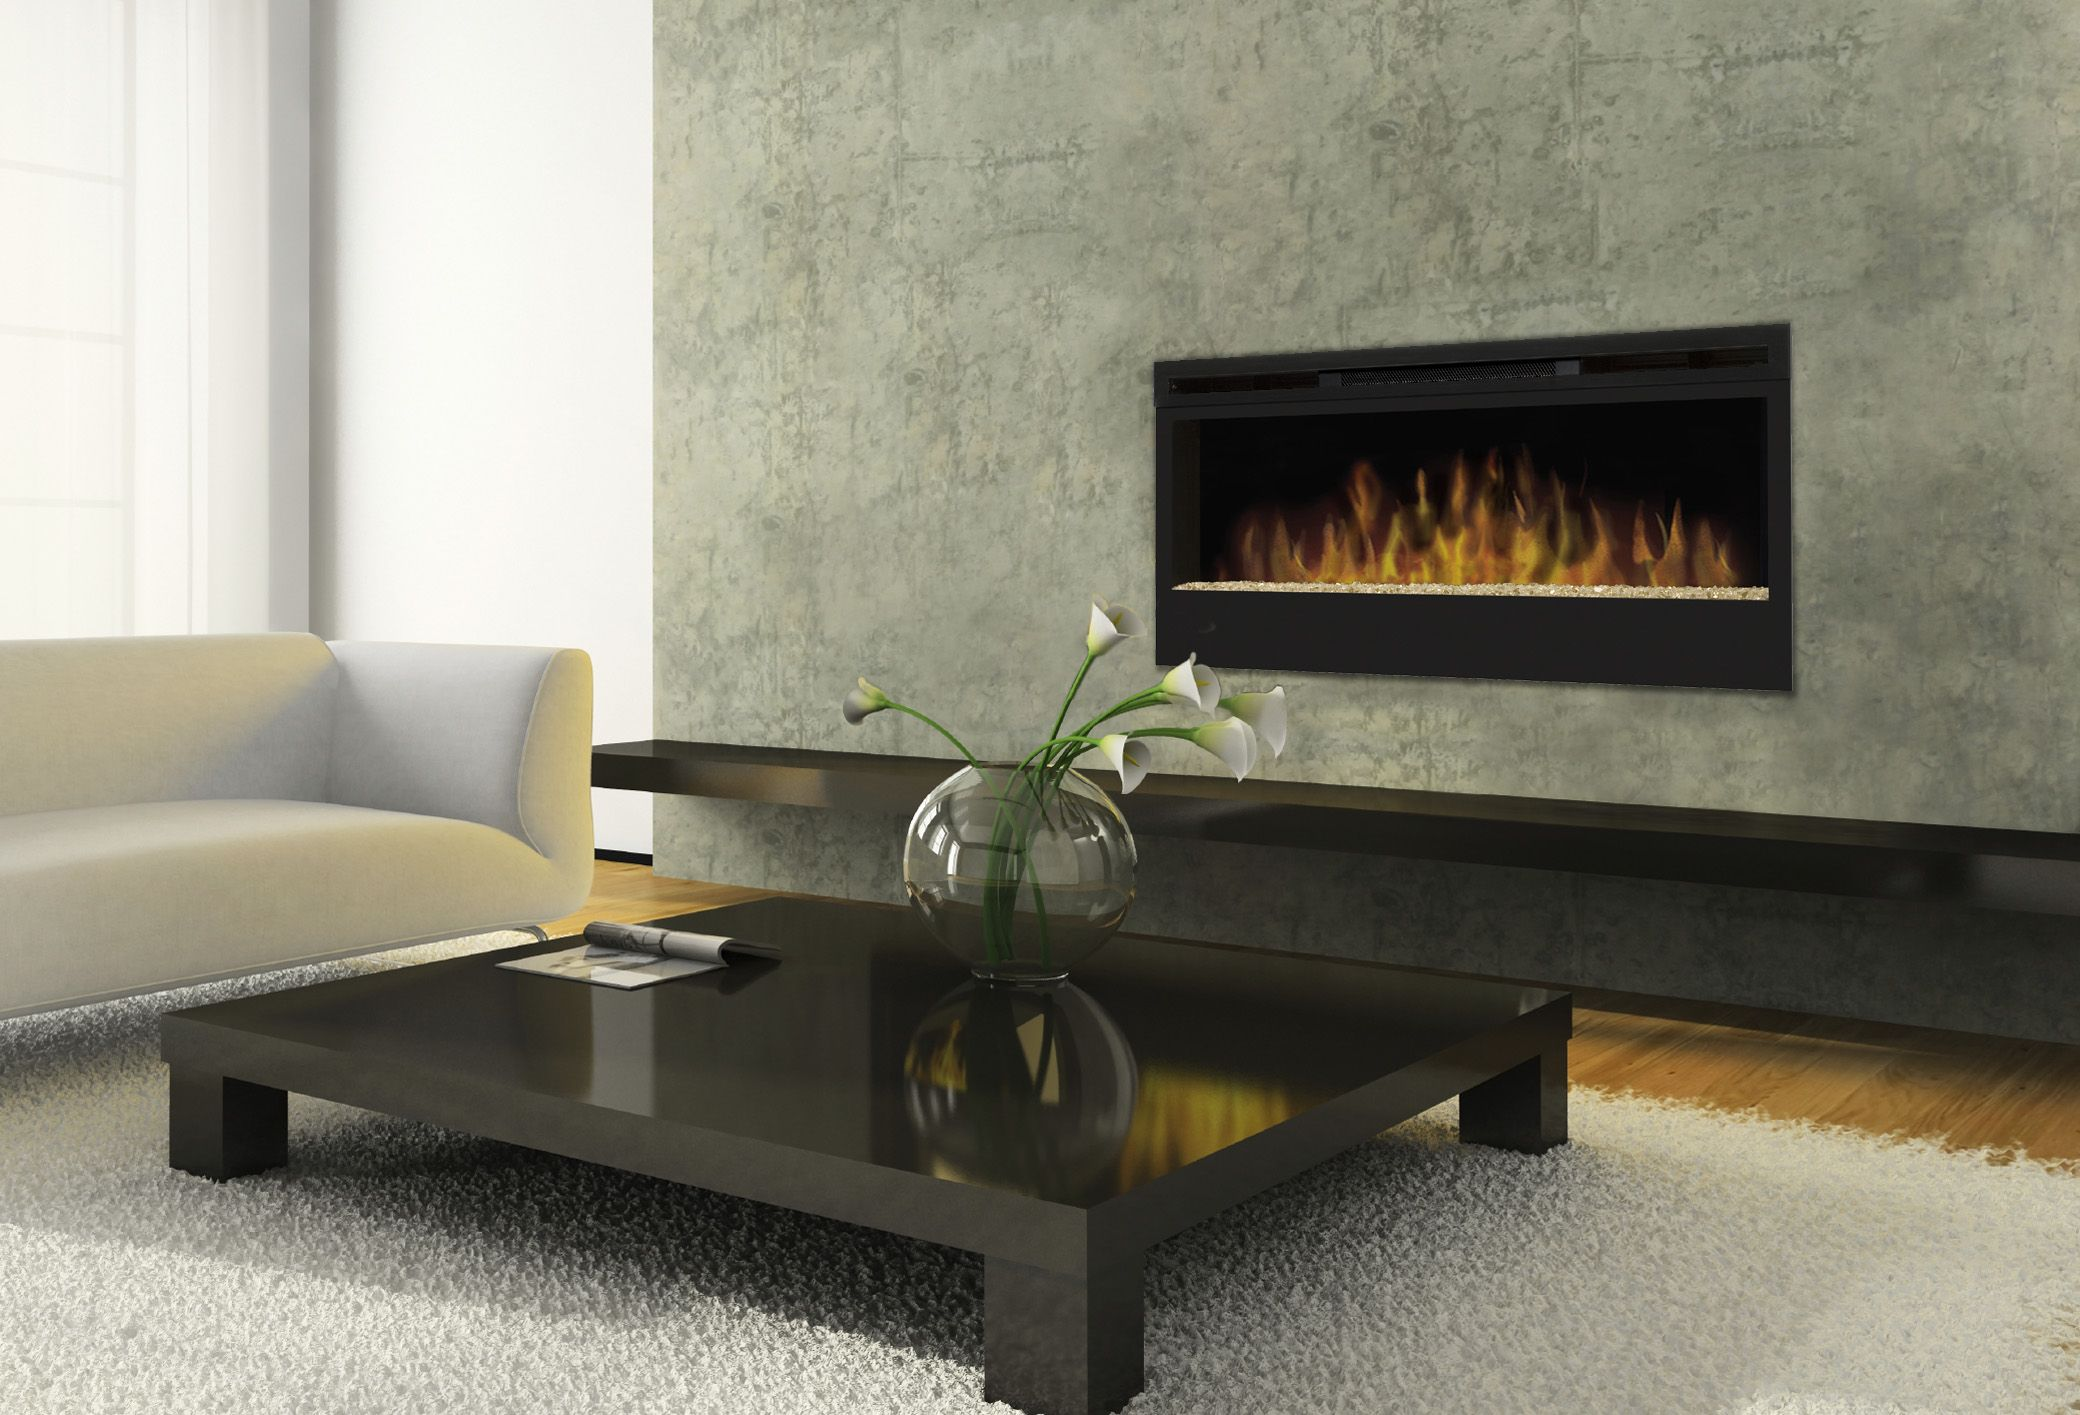 Living Room With Electric Fireplace Google Search Fireplace Decor Pinterest Wall Mount